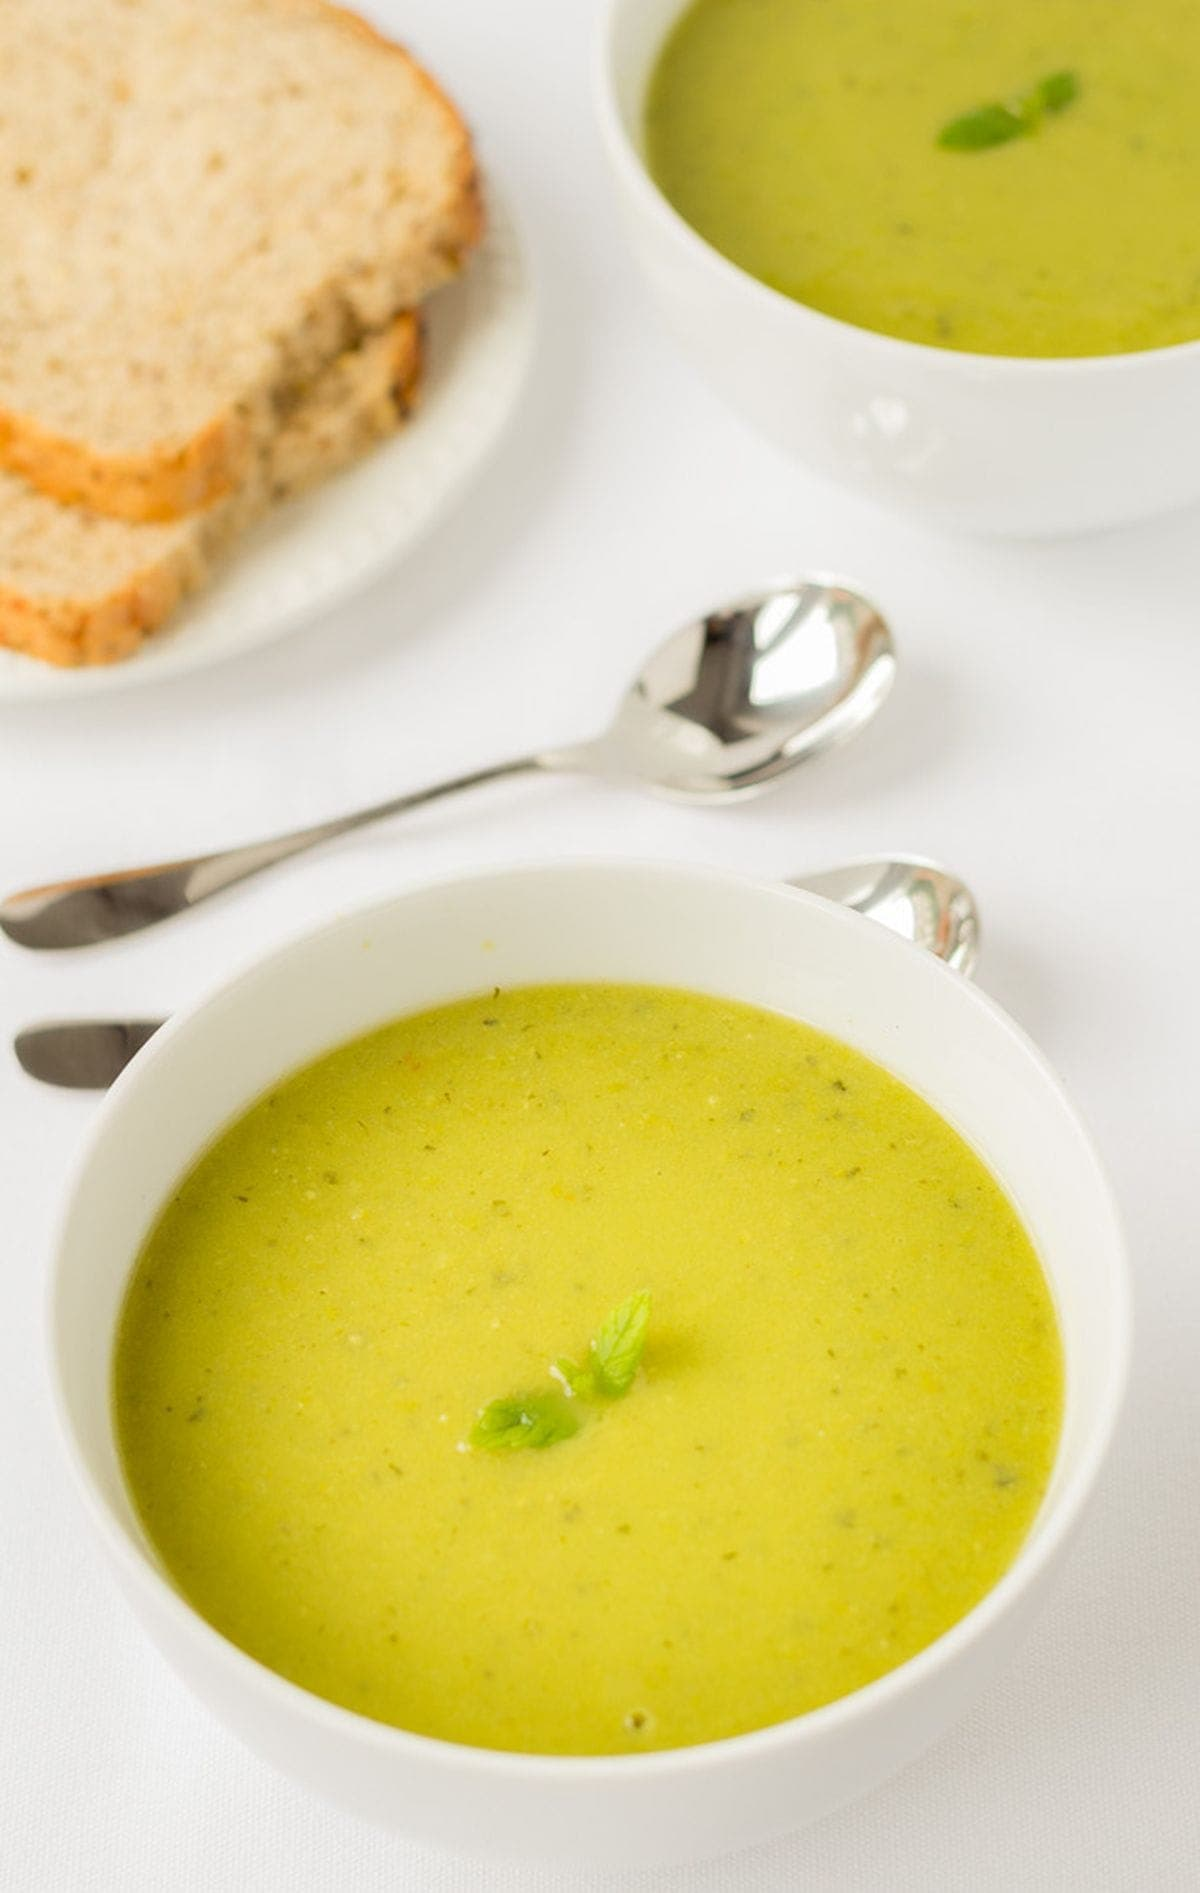 A bowl of pea and mint soup in the foreground with another bowl of soup in the background separated by soup spoons and a plate of sliced bread.